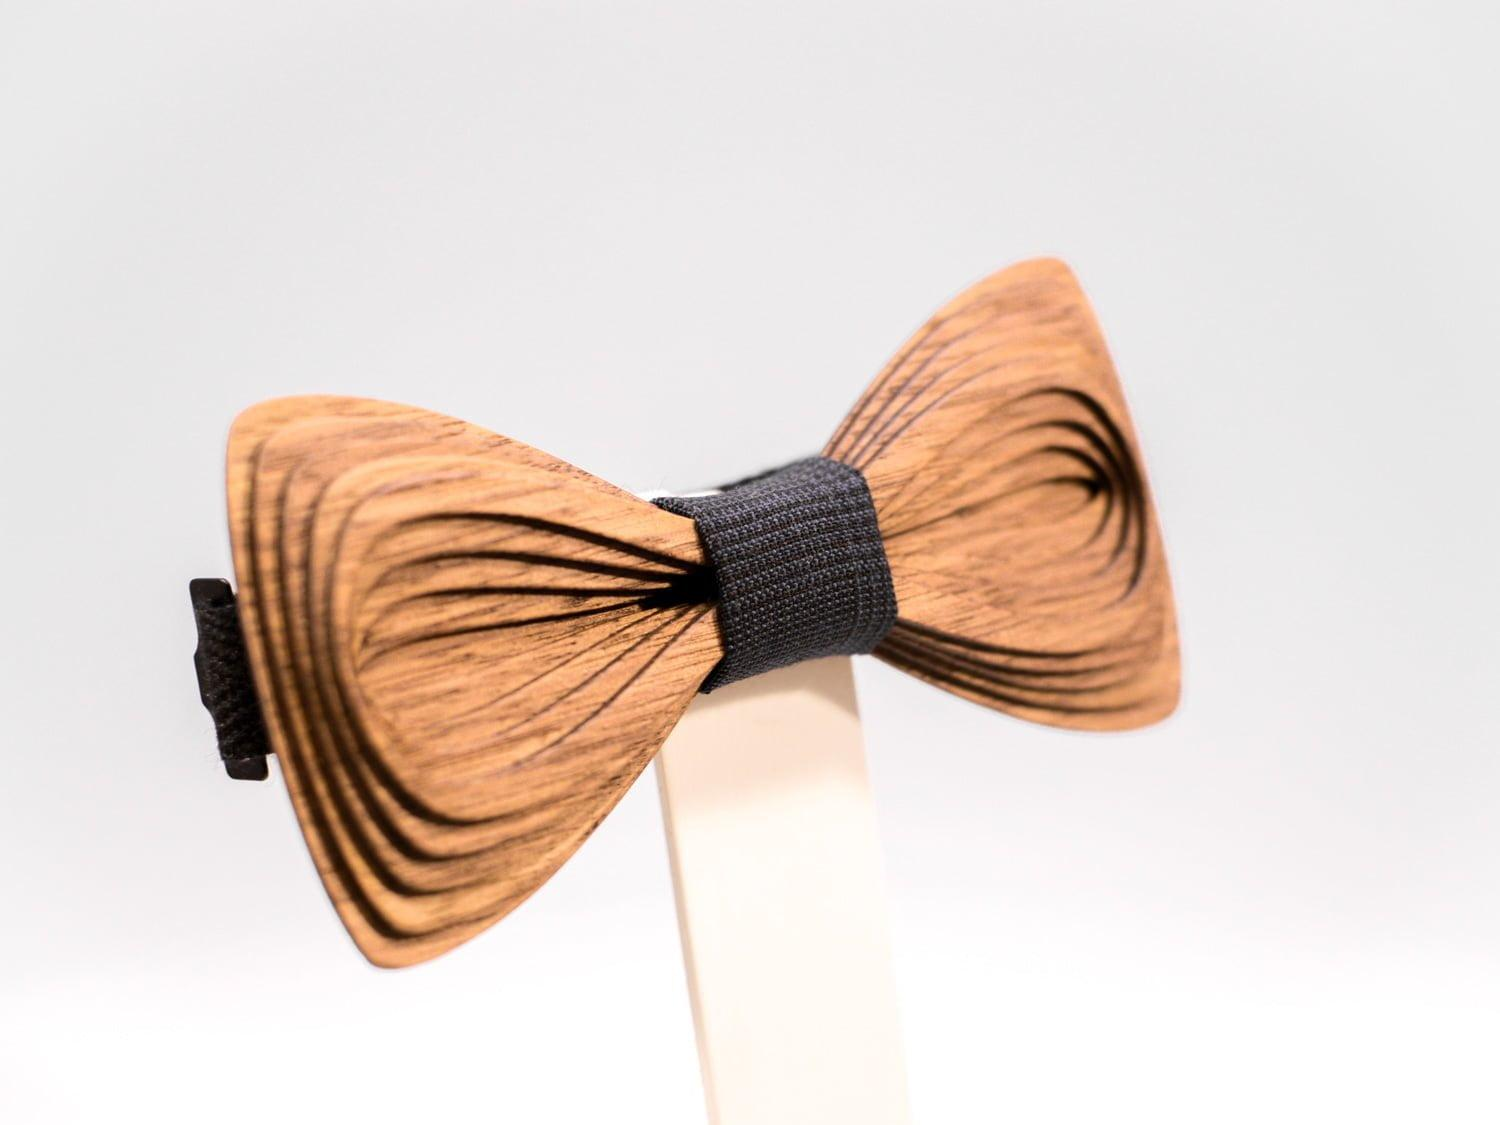 SÖÖR Antero neckwear in walnut wood from FSC certified forest. A wooden bowtie by Hermandia.